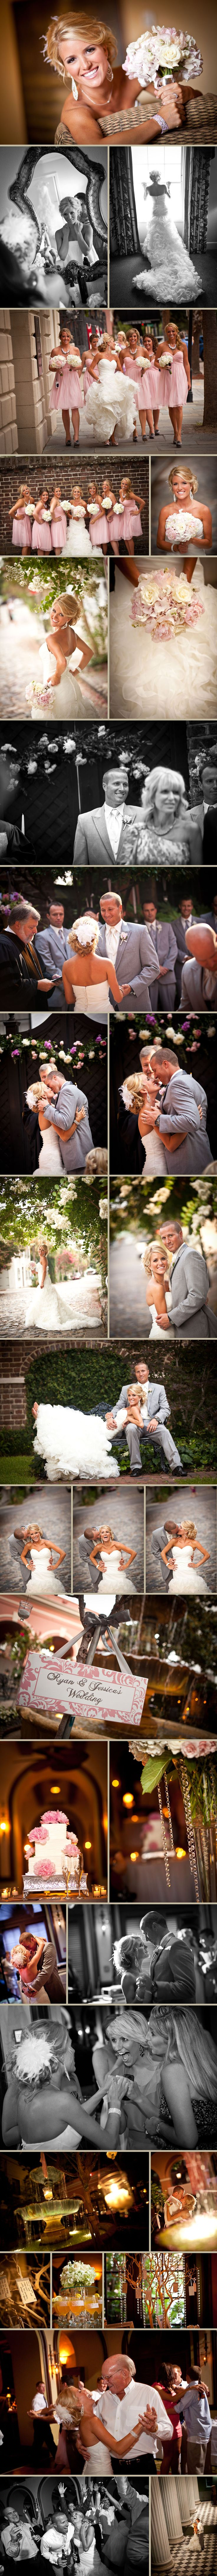 Wedding photo ideas: Pictures Ideas, Photo Ideas, Wedding Pics, Color, Bridesmaid Dresses, Wedding Photos, Wedding Pictures, Hair, Picture Ideas